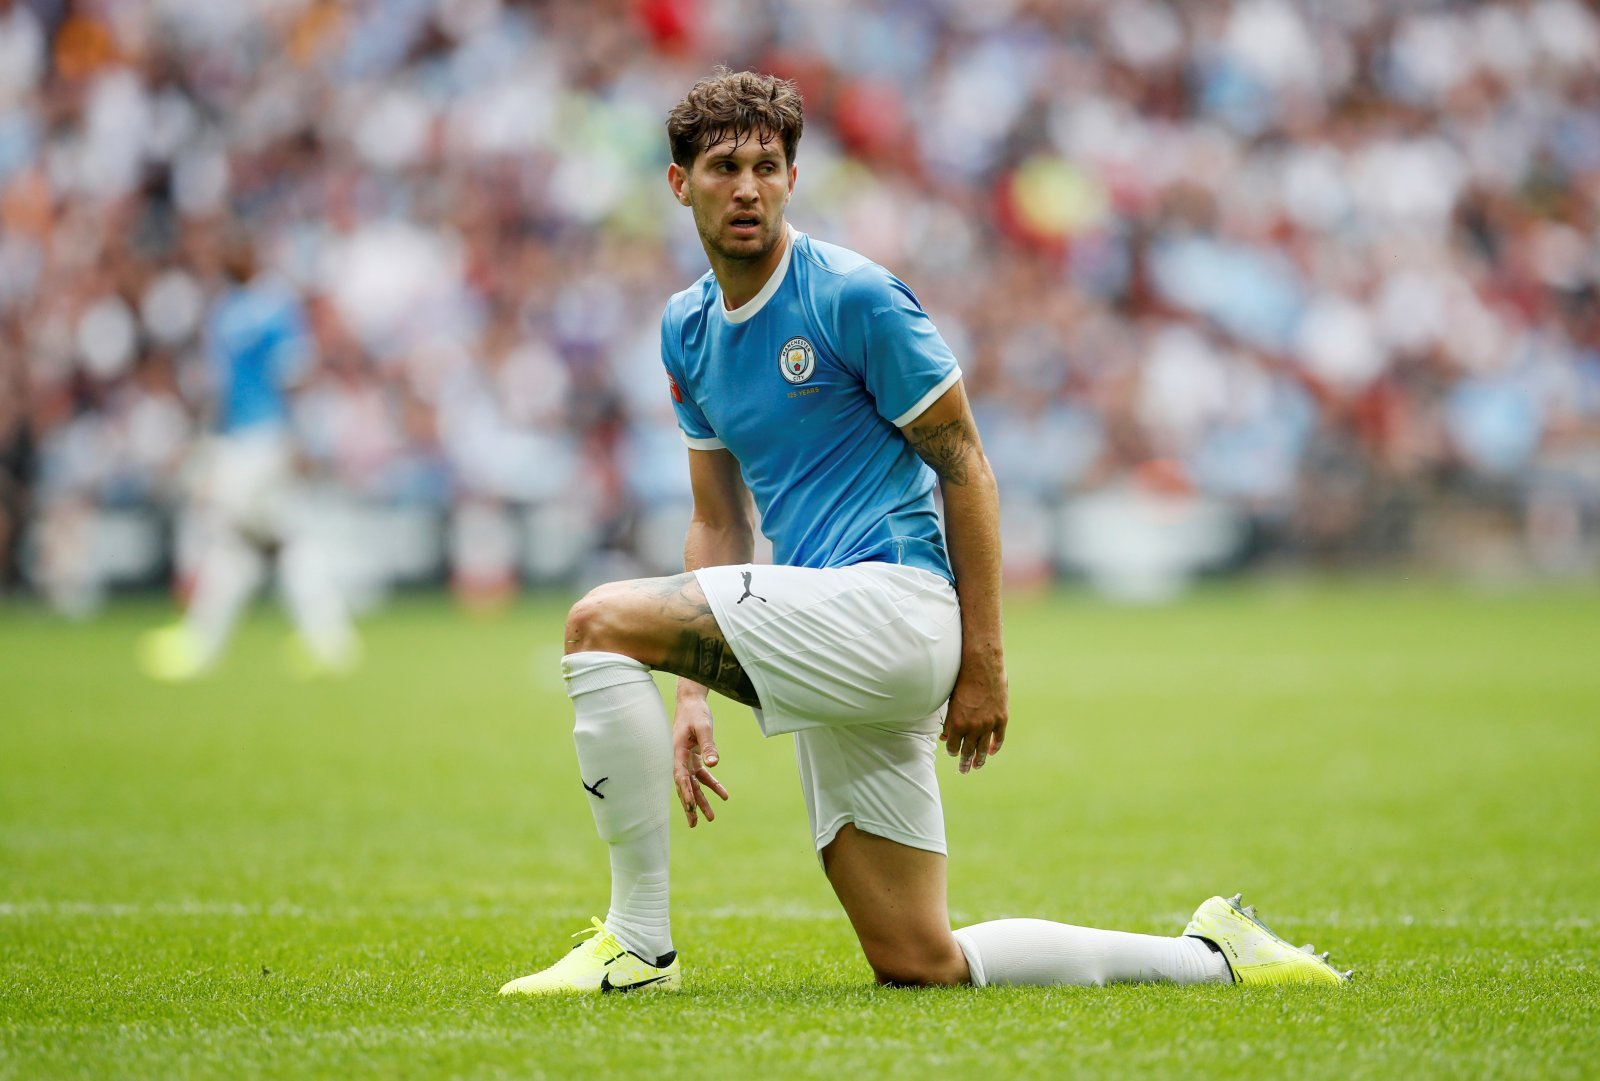 Arsenal: Fans relieved after latest reports over John Stones